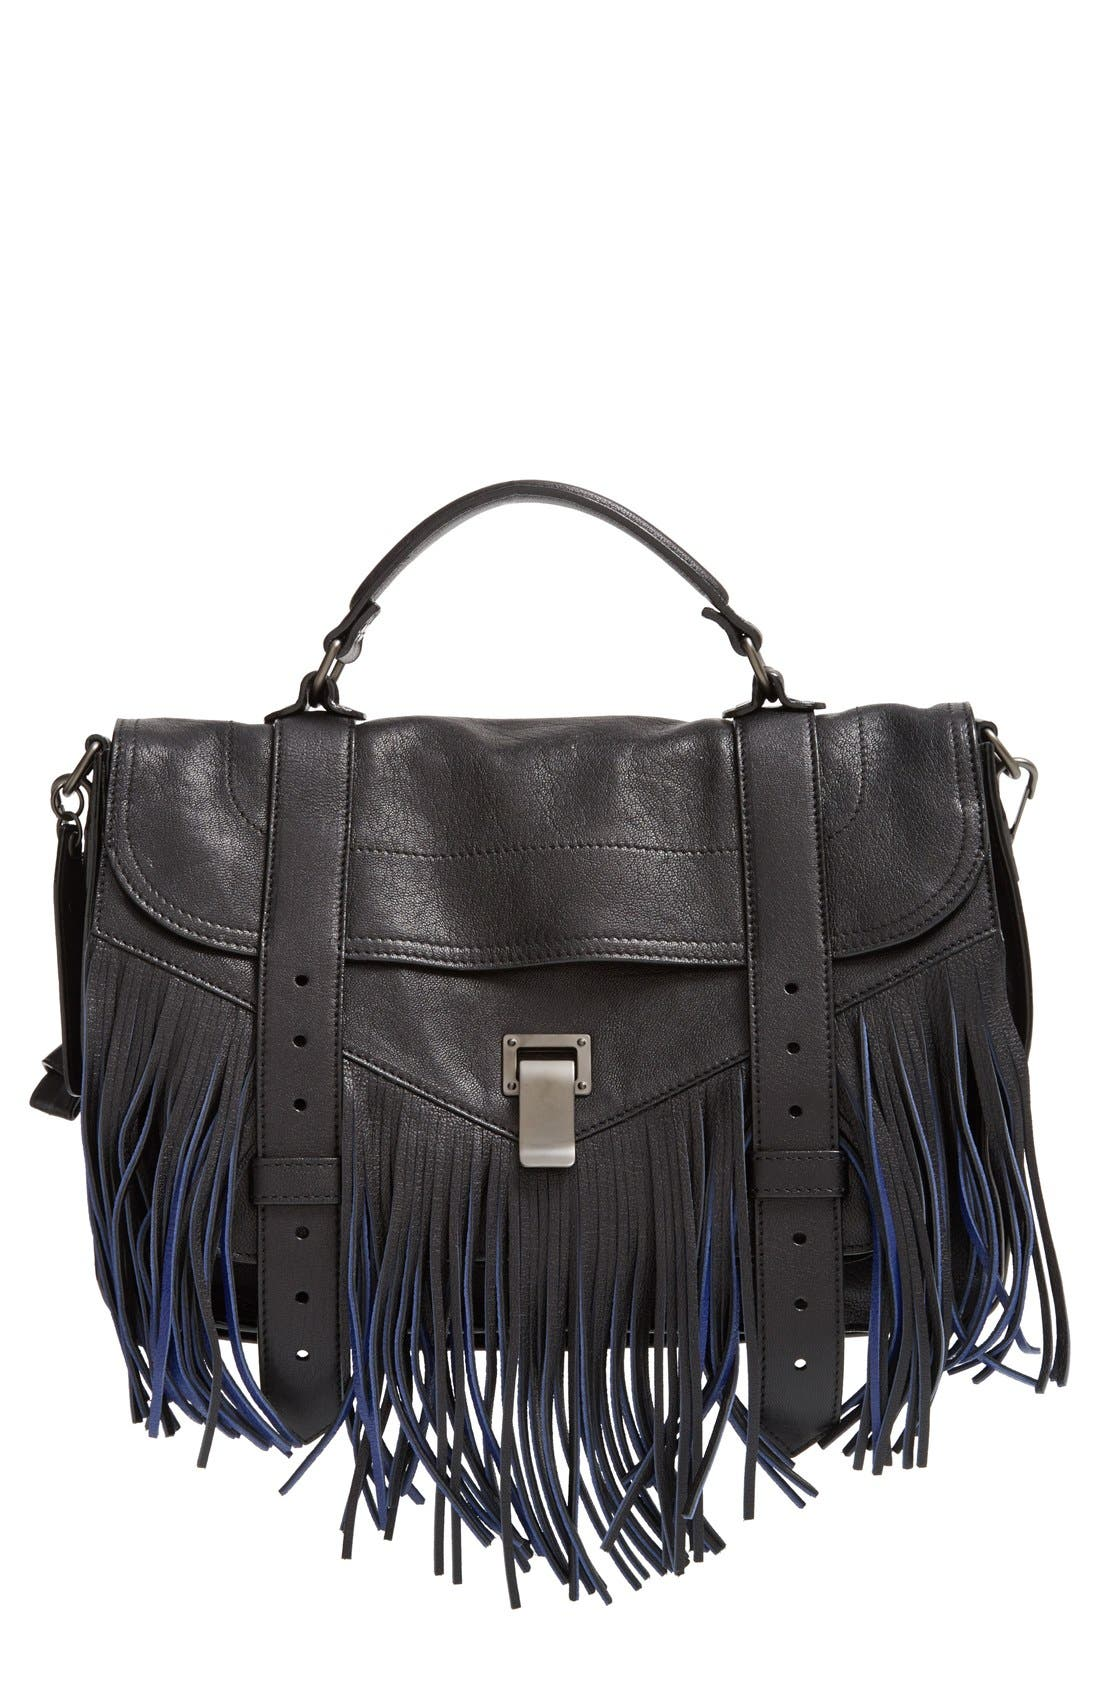 Alternate Image 1 Selected - Proenza Schouler 'Medium PS1' Fringe Leather Satchel